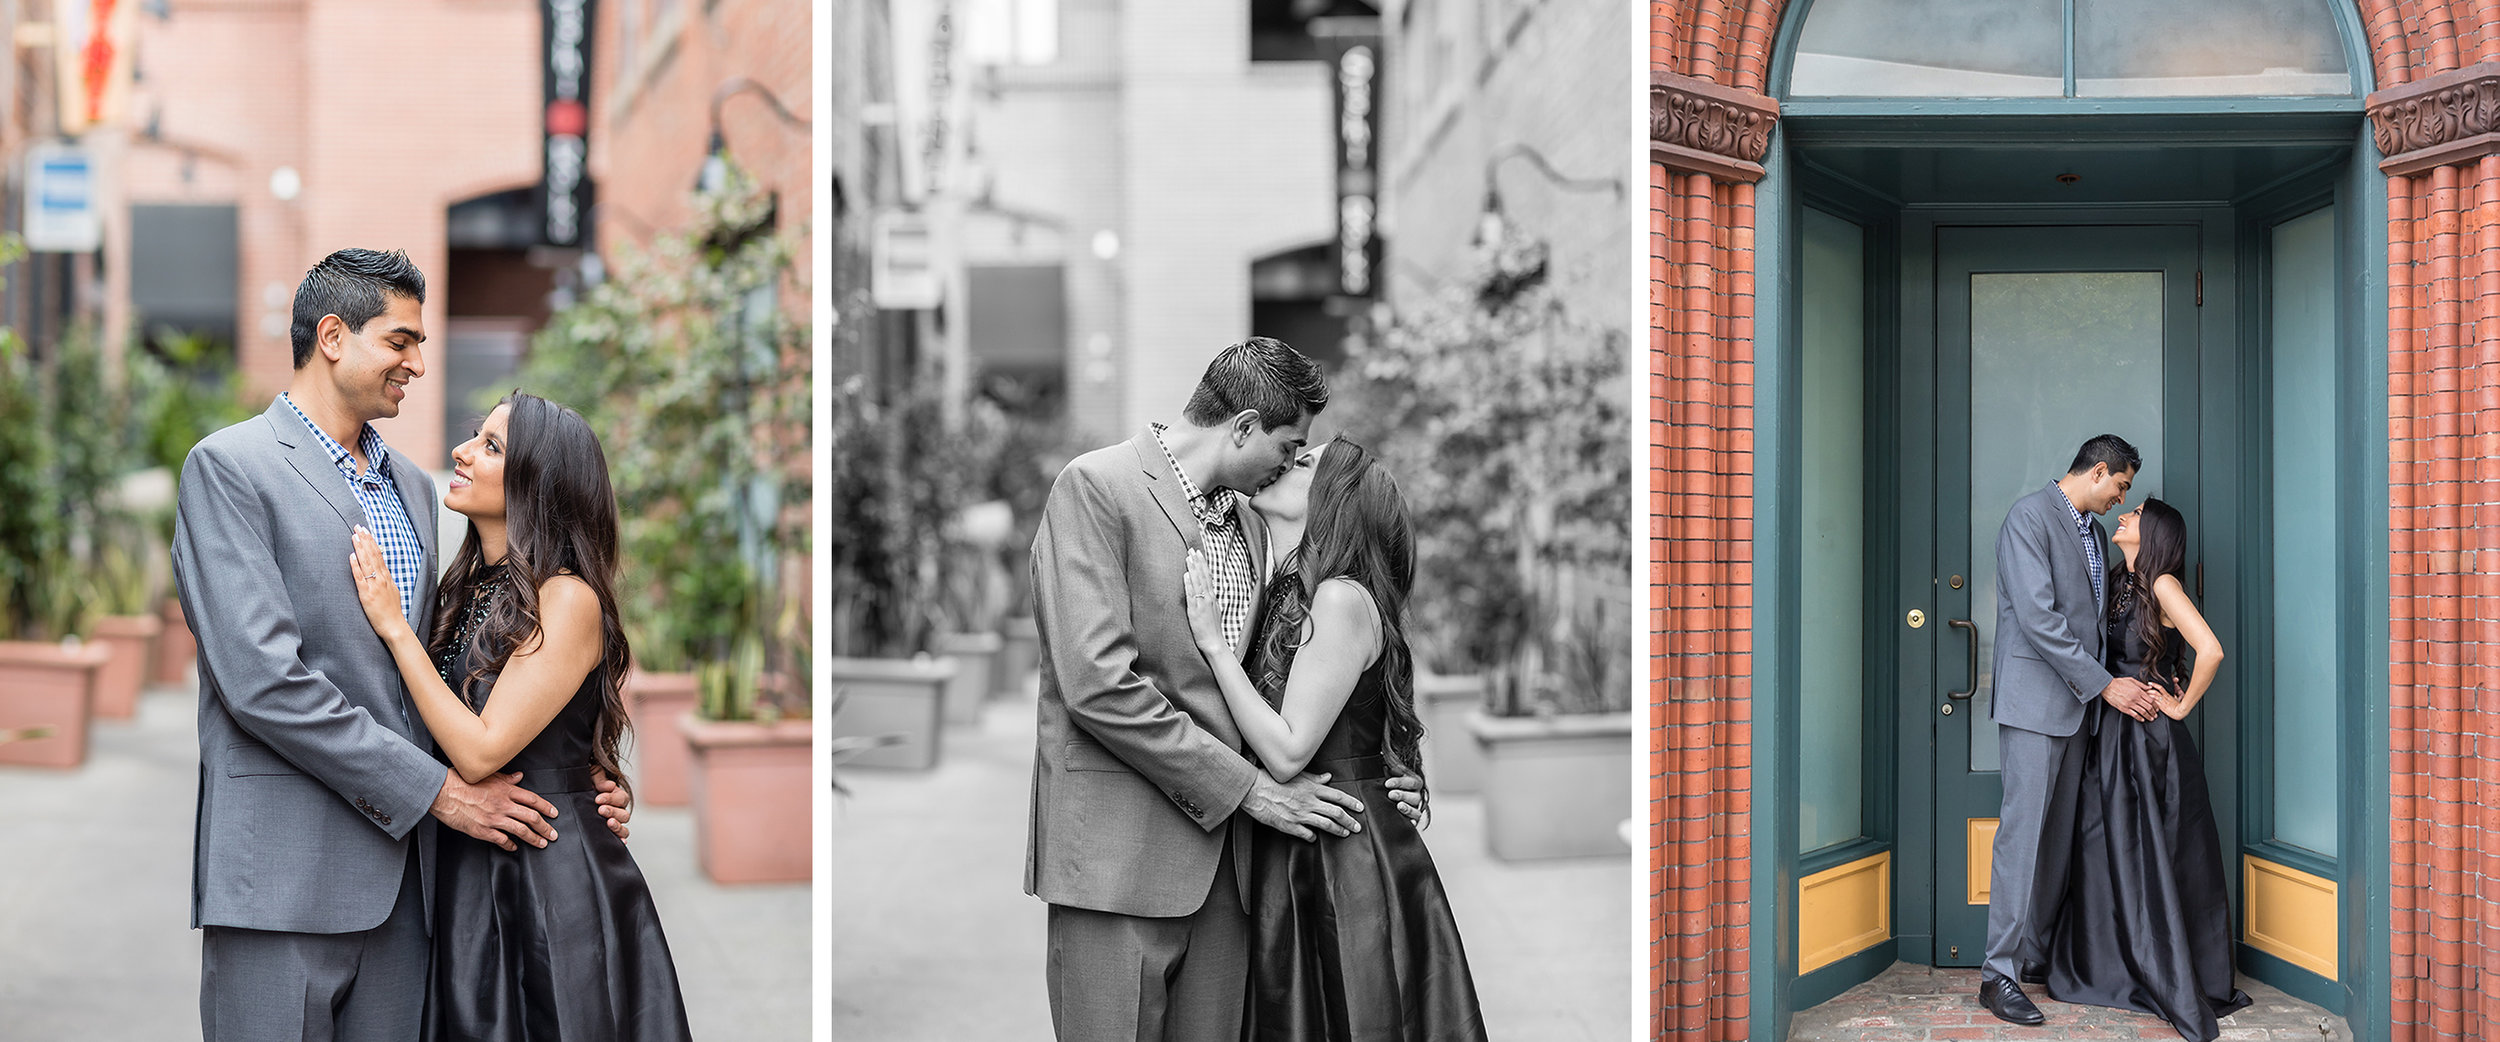 Pasadena Engagement Photography Images 9.jpg